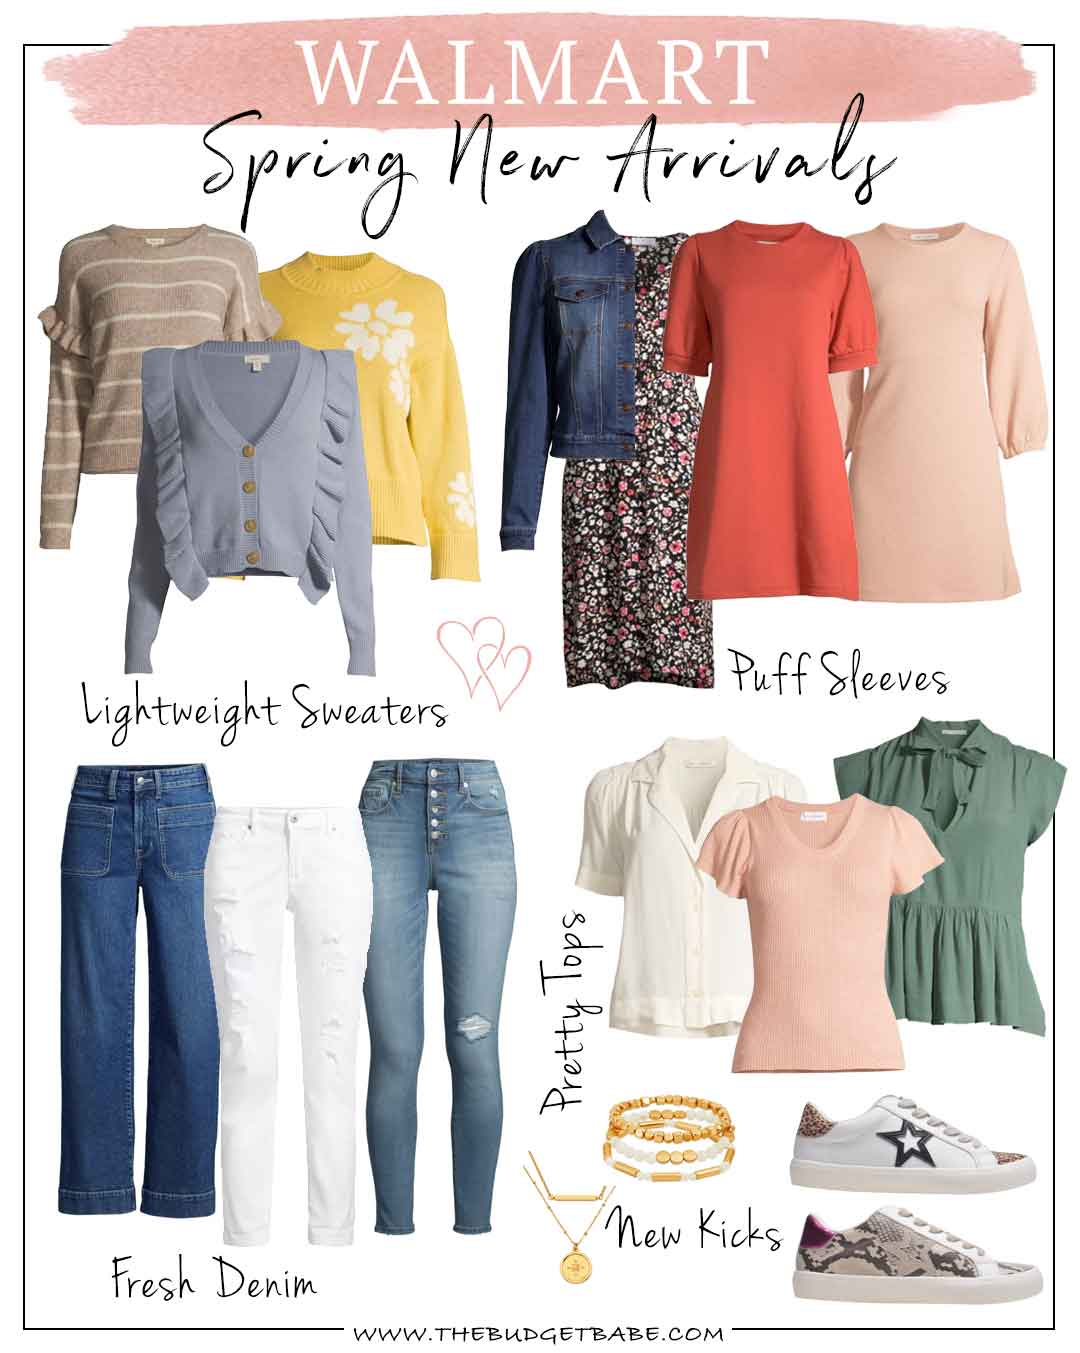 Walmart New Spring Arrivals 2021 Trends and Affordable Style